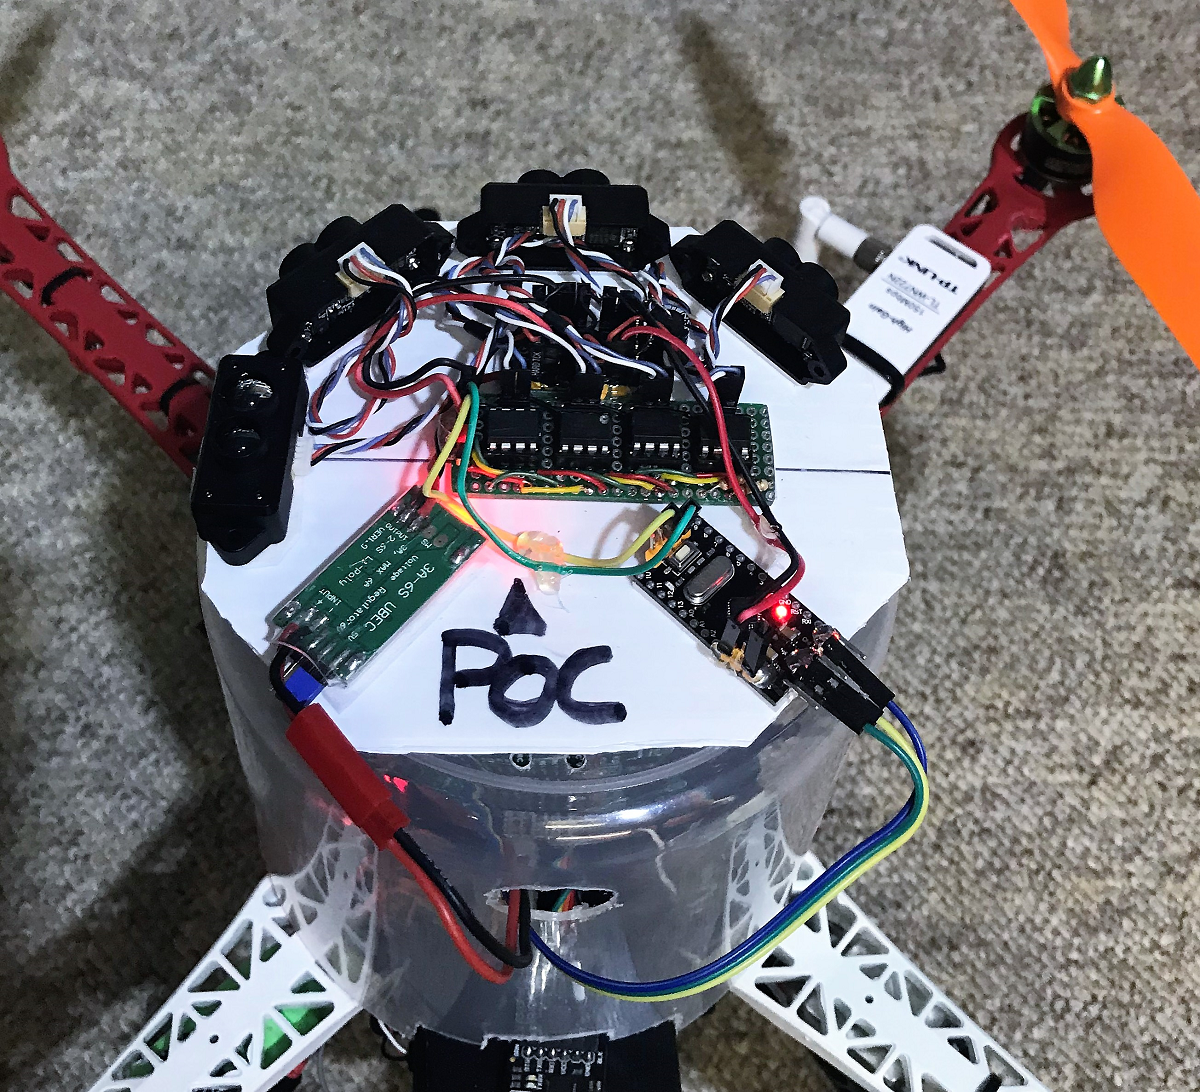 Avoidance Experiments with the POC and Benewake TFMINI